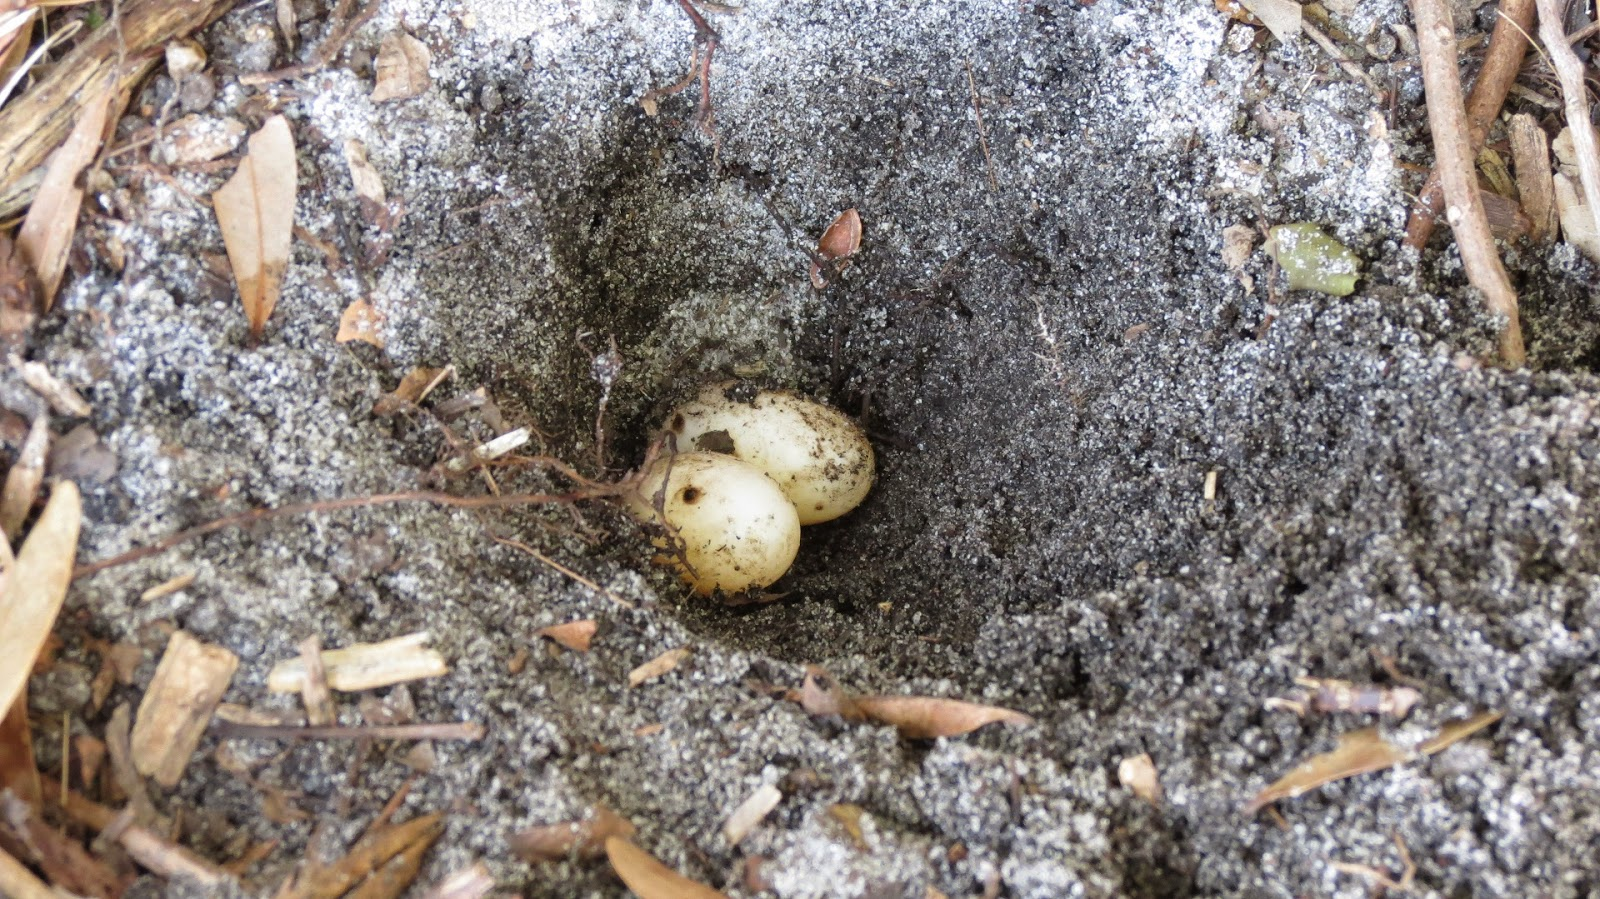 Three Striped Mud Turtle eggs in Florida